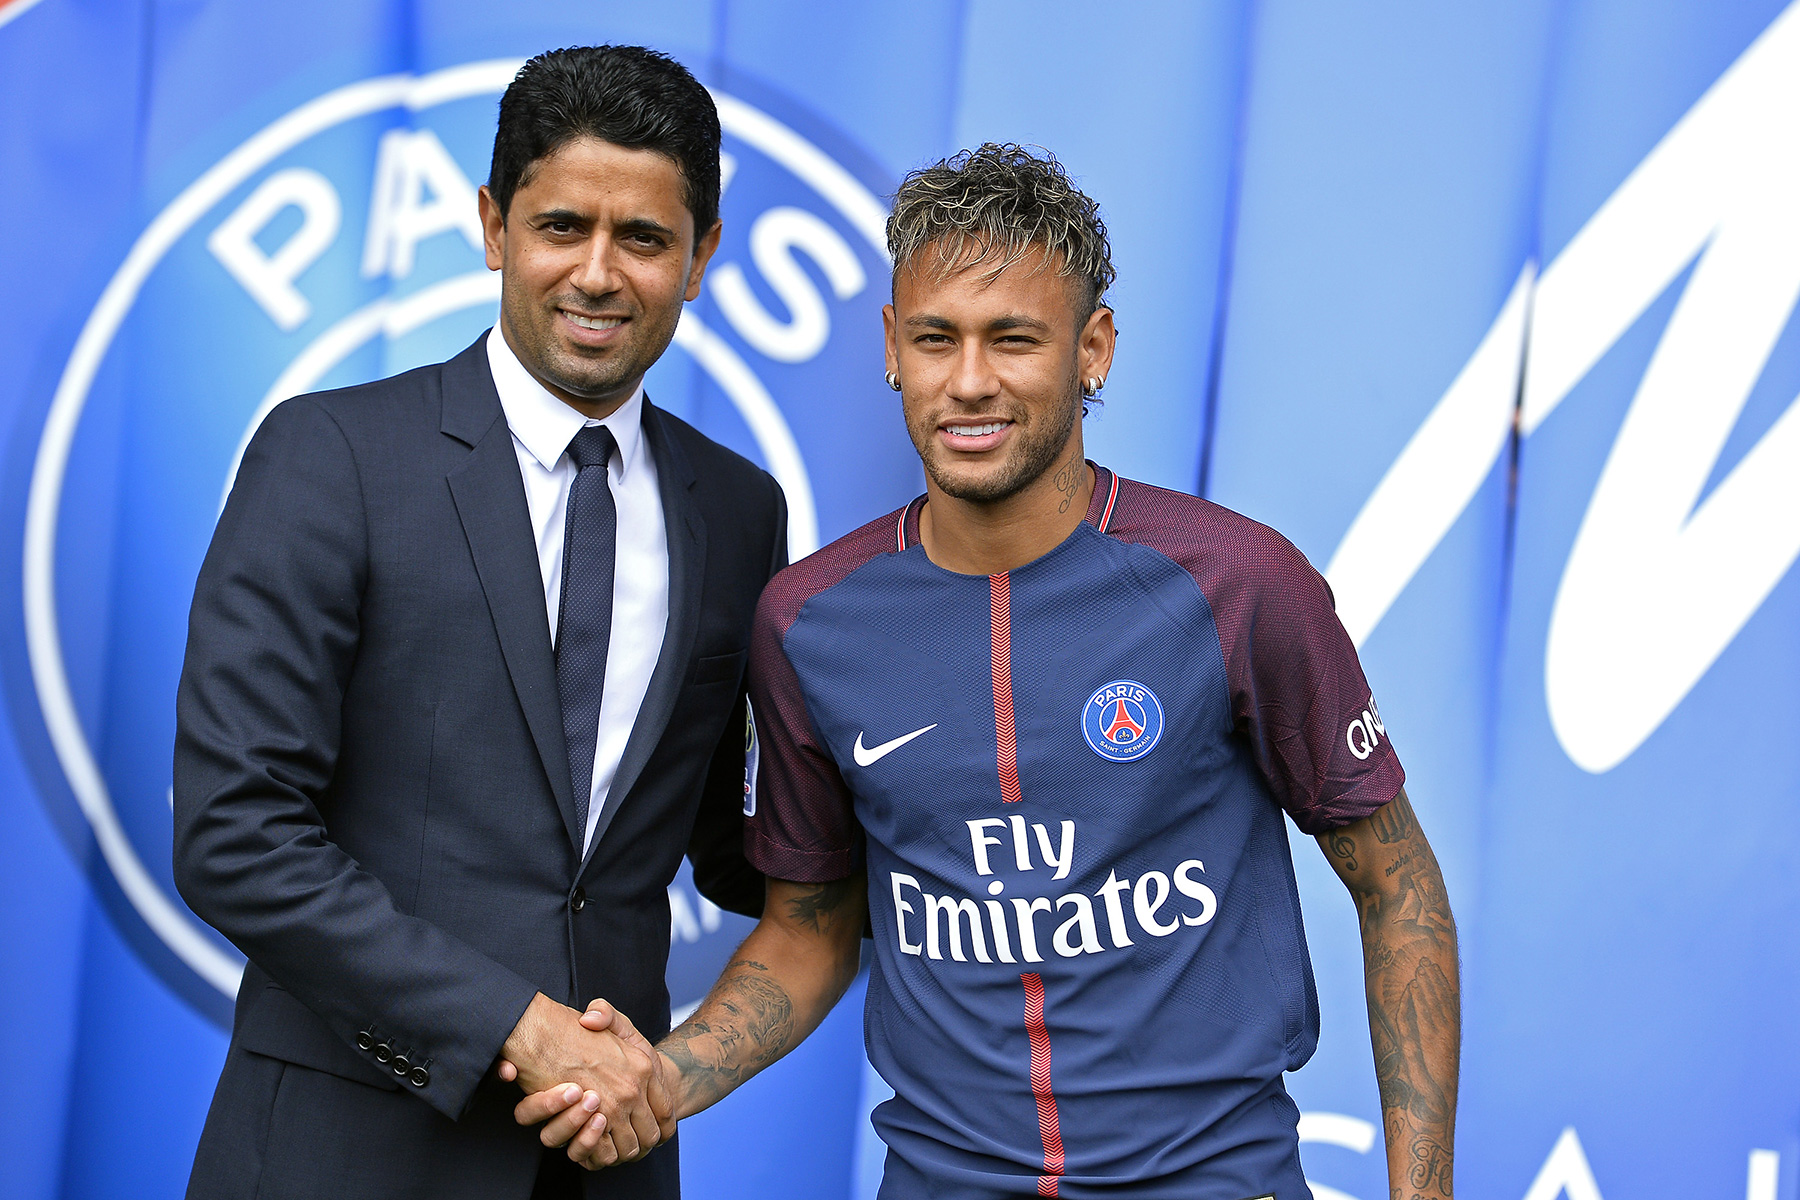 Nasser Al Khelaifi and Neymar